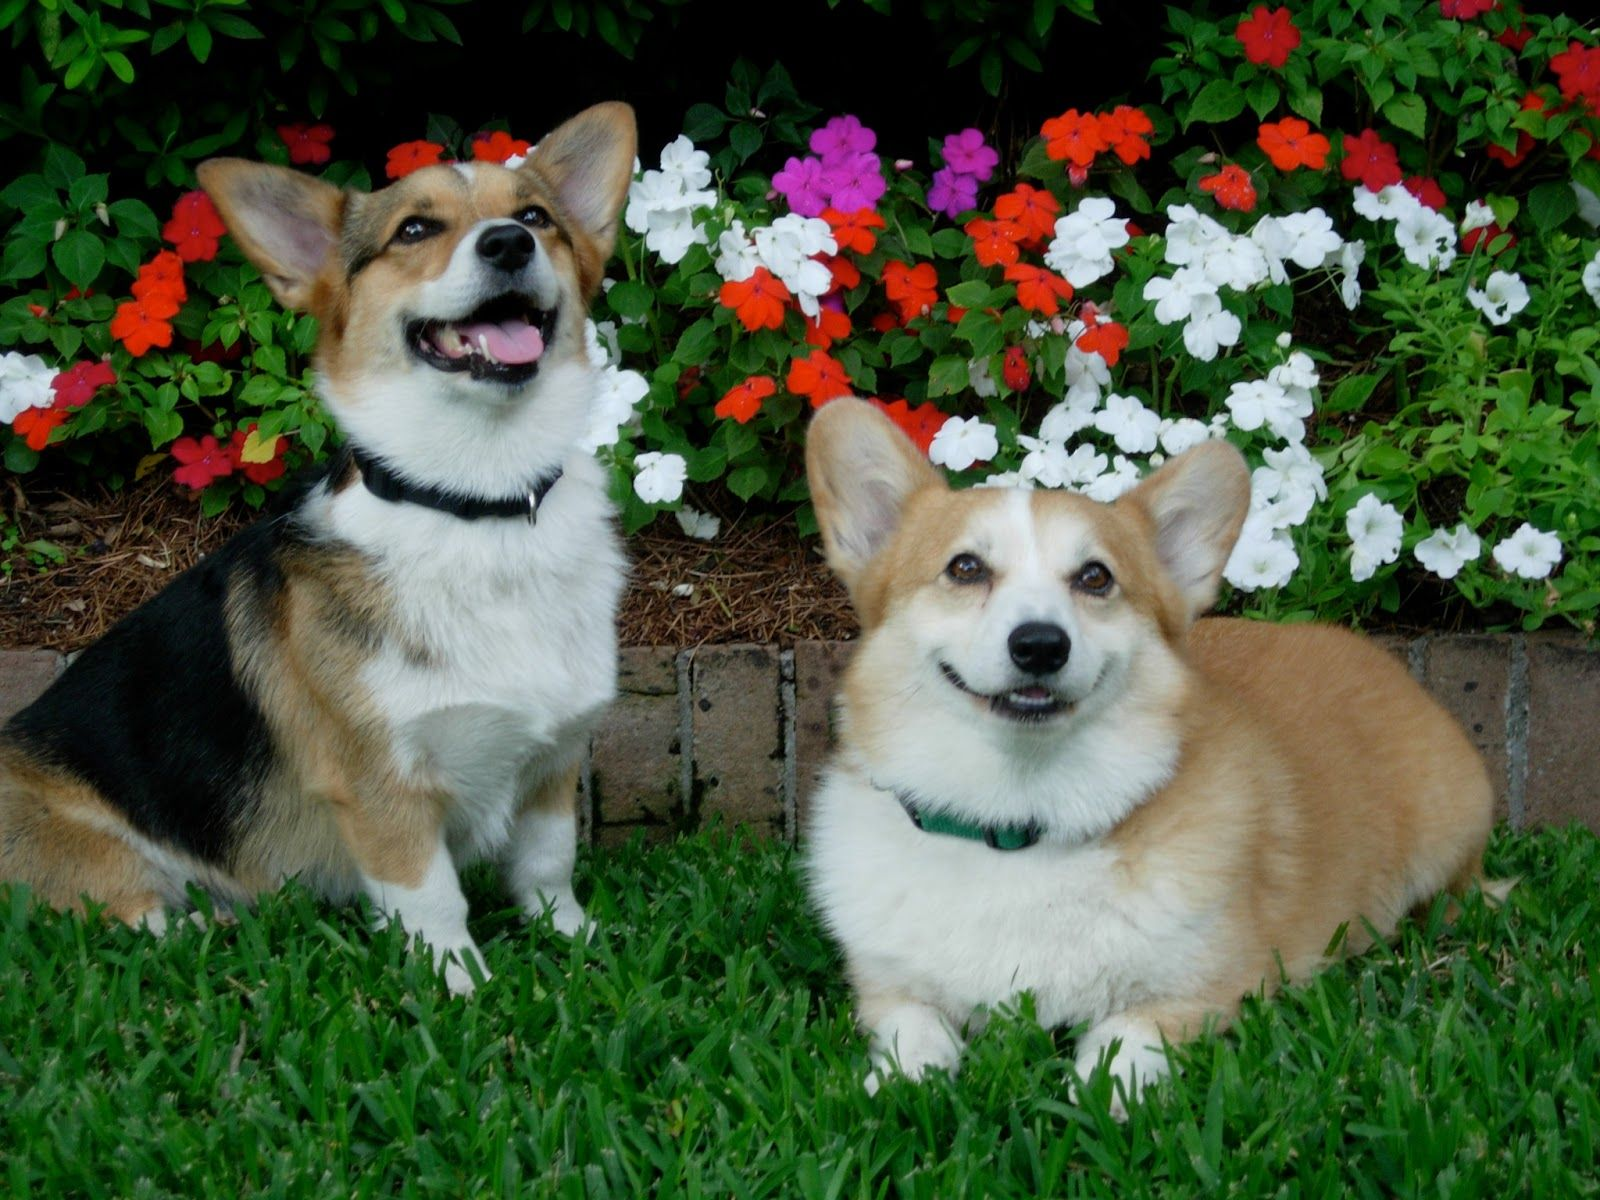 Agility Girl Ruby Her Devoted Samwise Two Rescue Pembroke Welsh Corgis Happily Re Homed In New Orleans The Daily Corgi Corgi Corgi Pembroke Pembroke Welsh Corgi